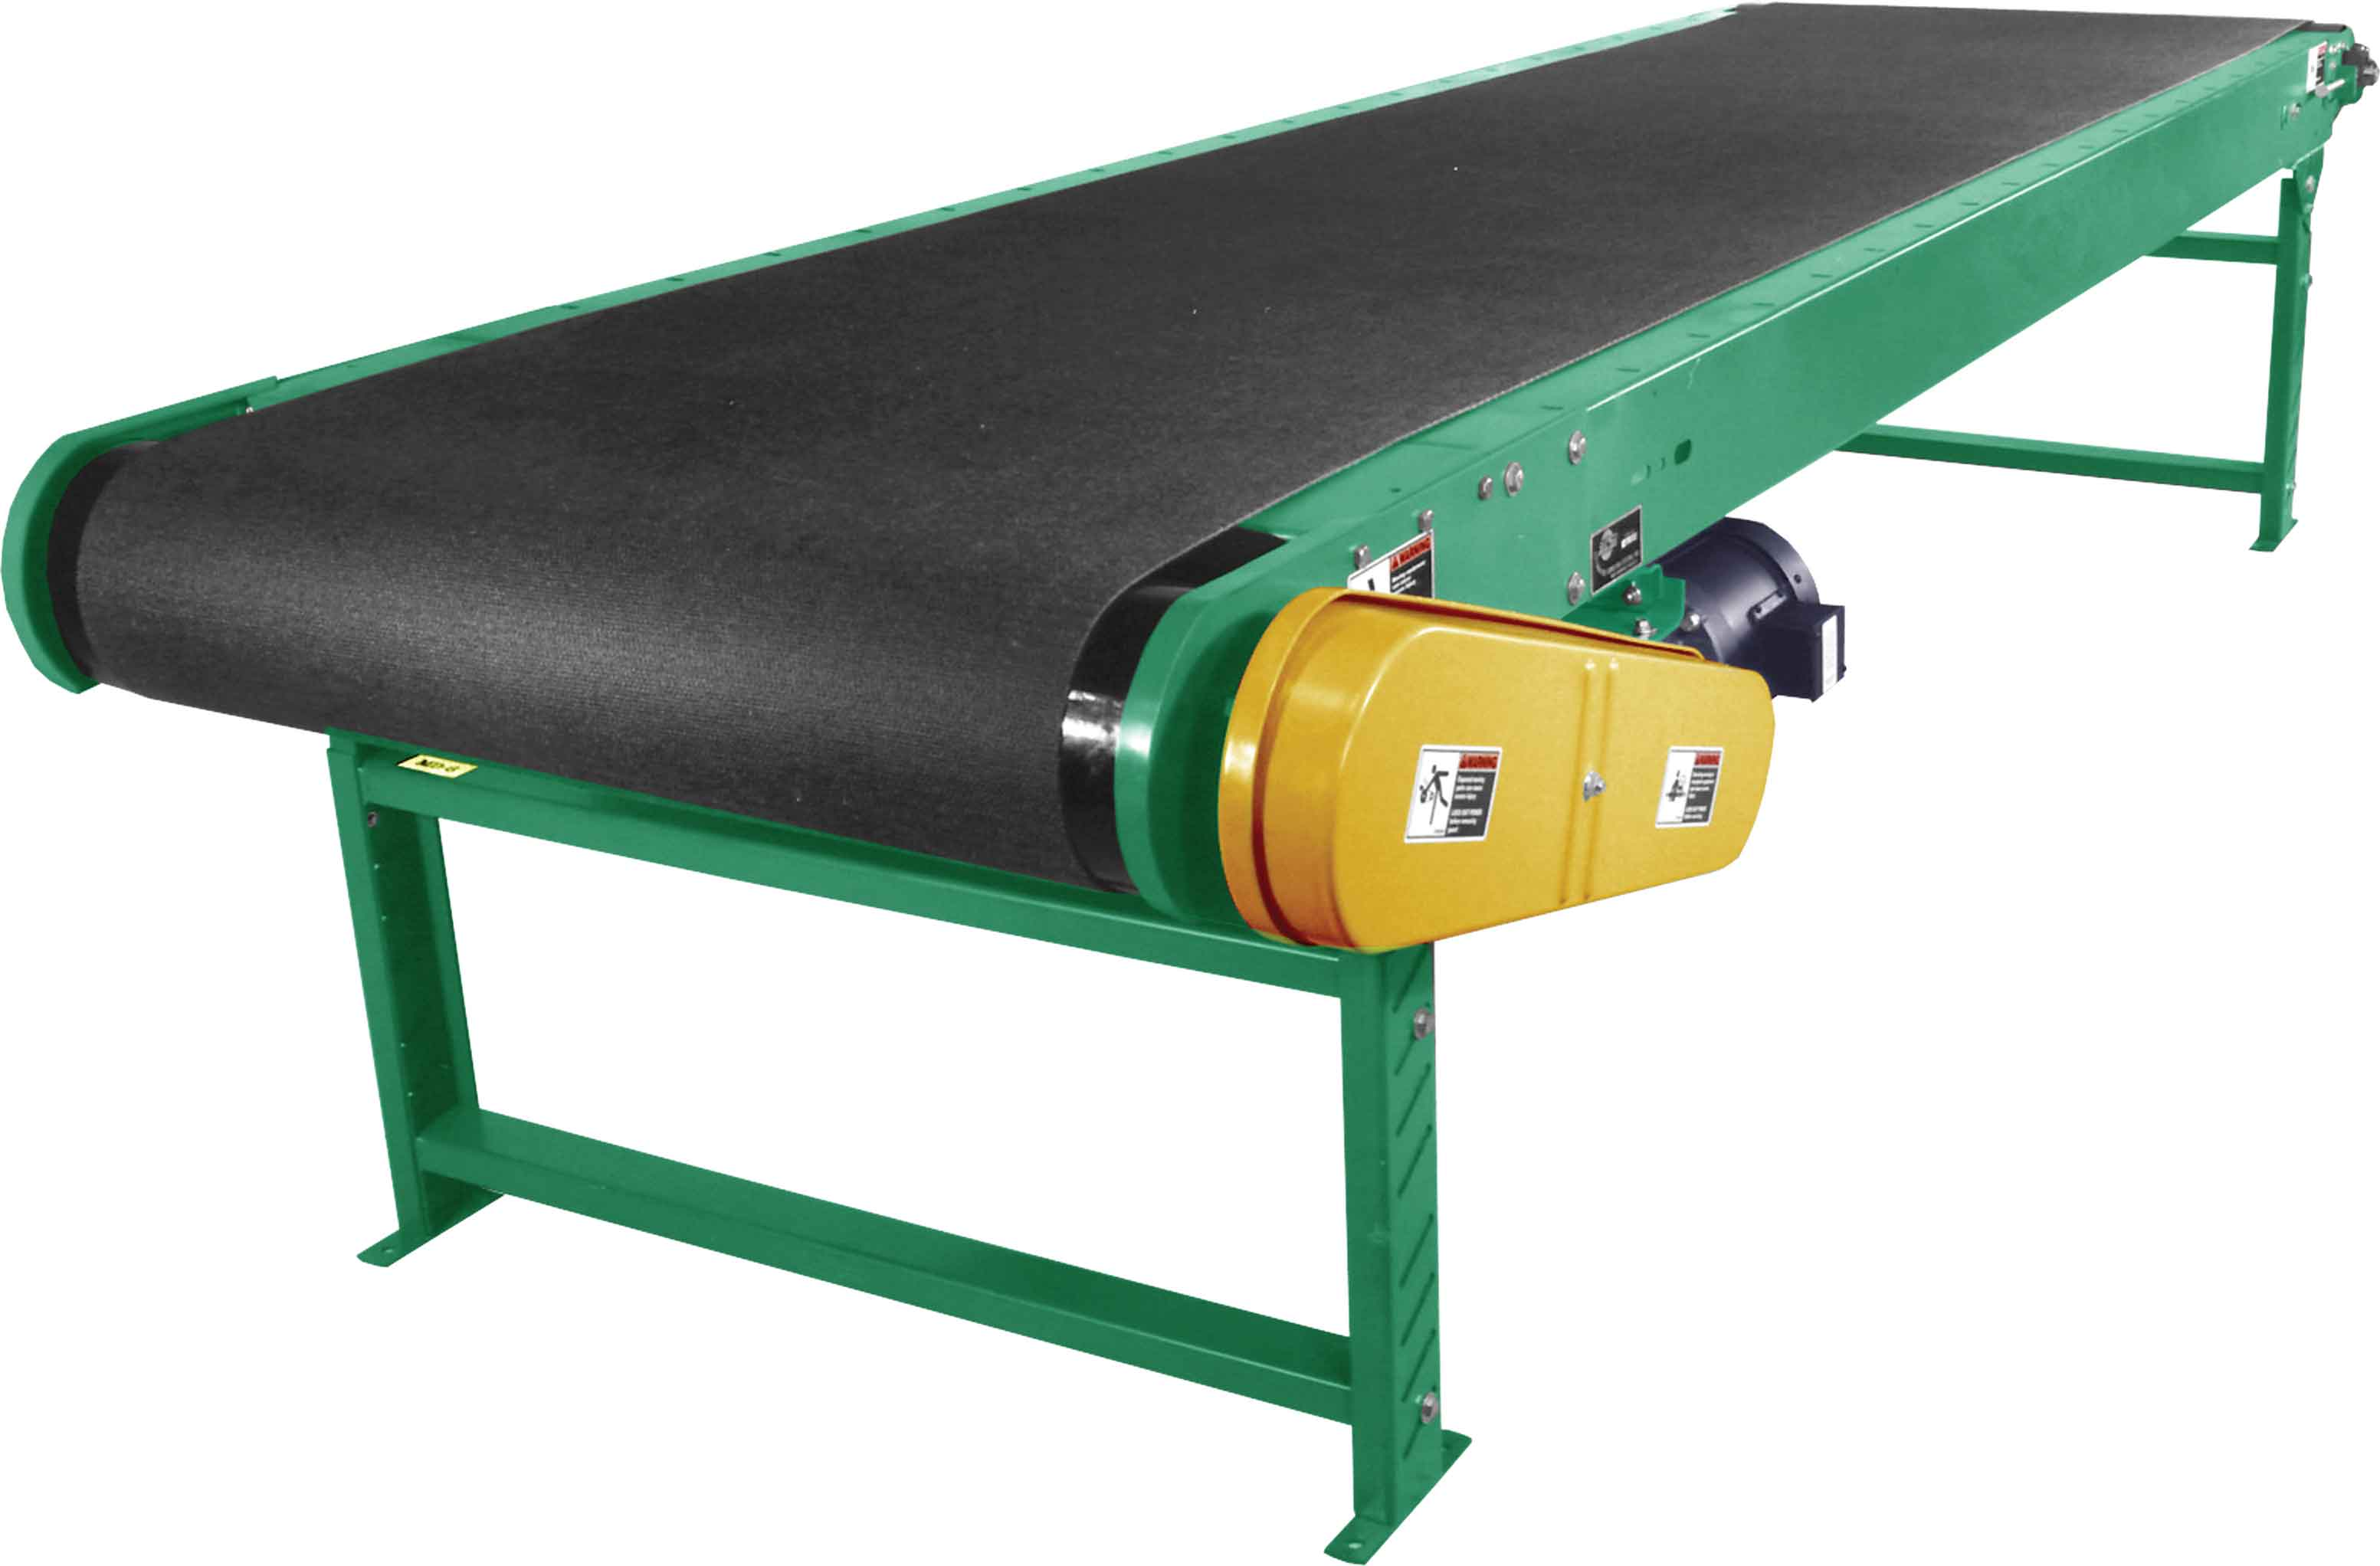 Low Profile Bed Manufacturers Amp Suppliers Of Conveyor In India